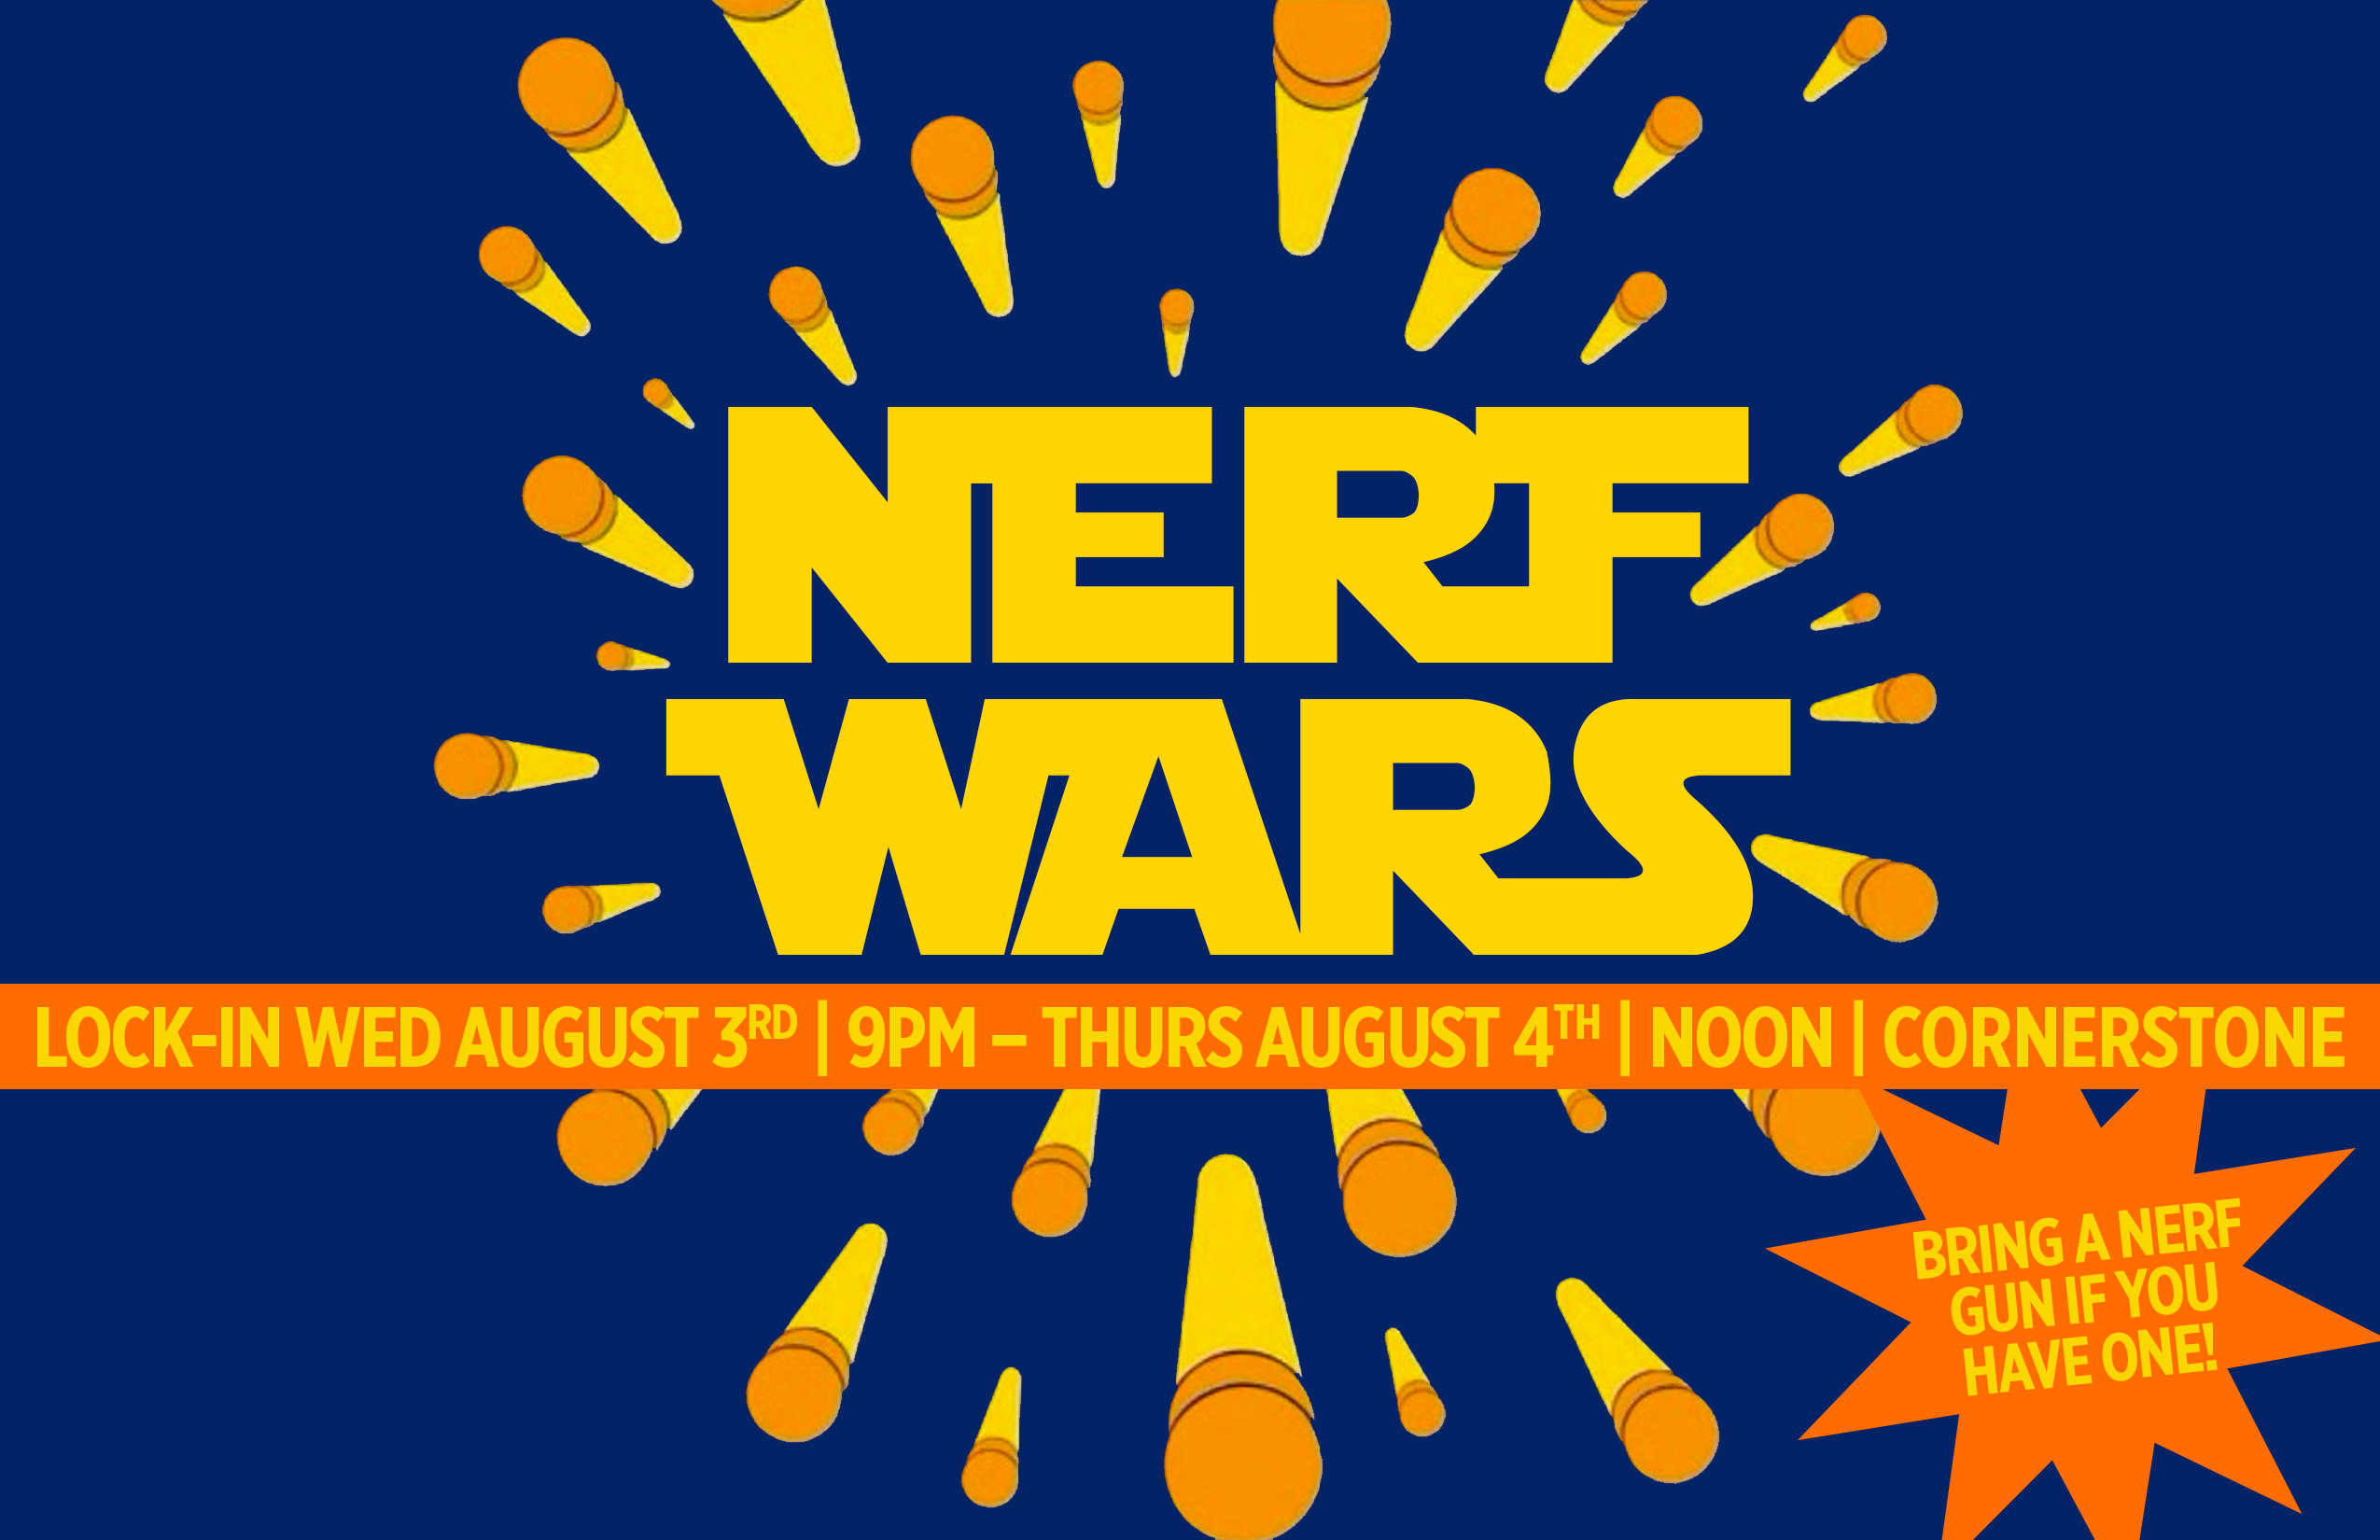 Back by popular demand, we will be having another Nerf War at CSM! This  event will be overnight, August 3-4, from 9pm-Noon. We will hang out, eat  snacks, ...